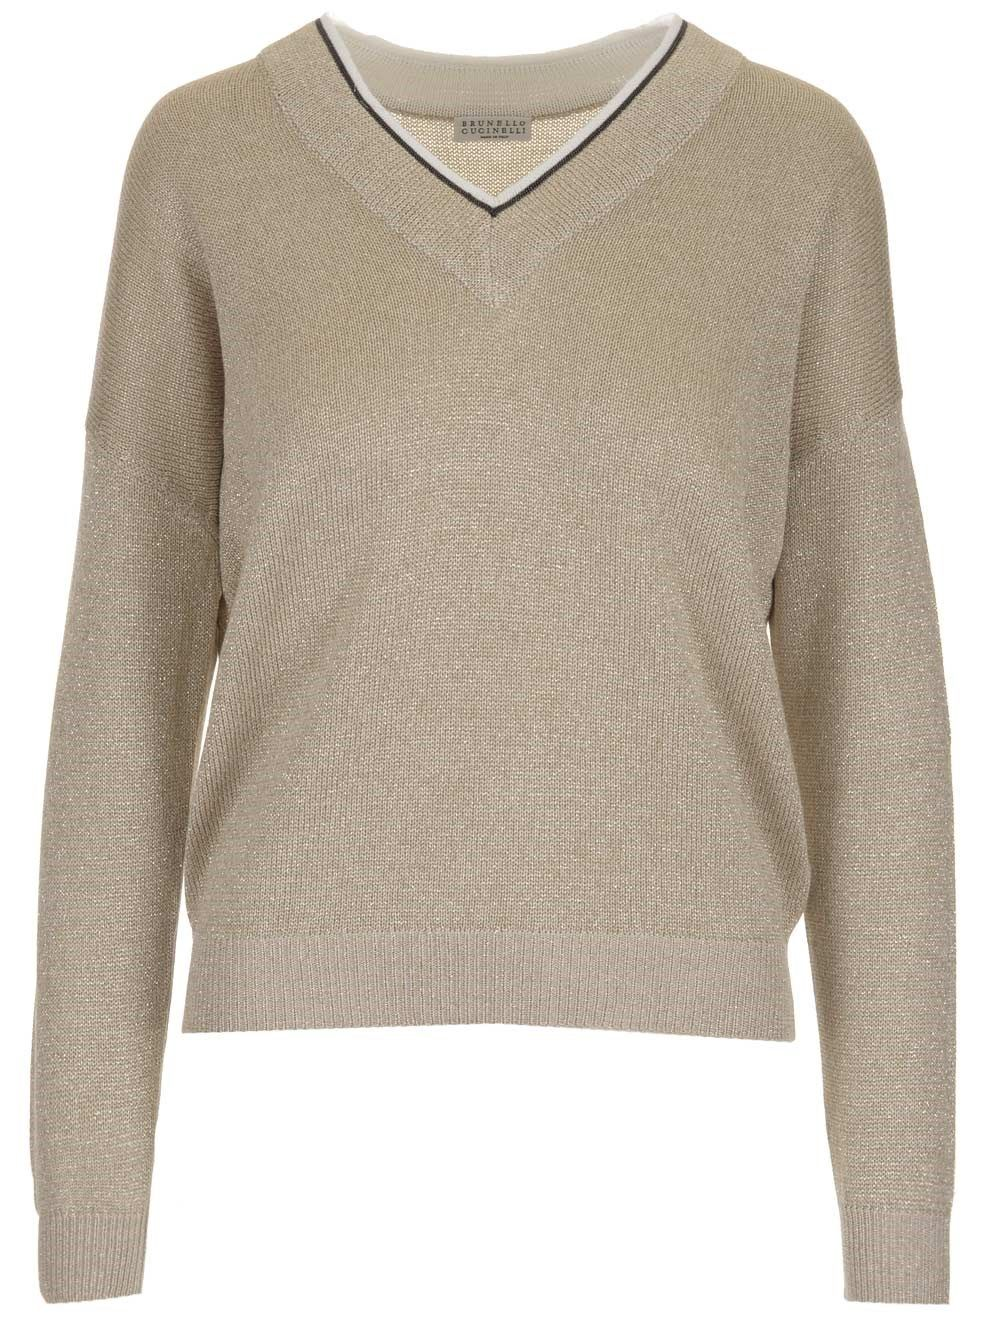 Brunello Cucinelli BRUNELLO CUCINELLI WOMEN'S BEIGE OTHER MATERIALS SWEATER